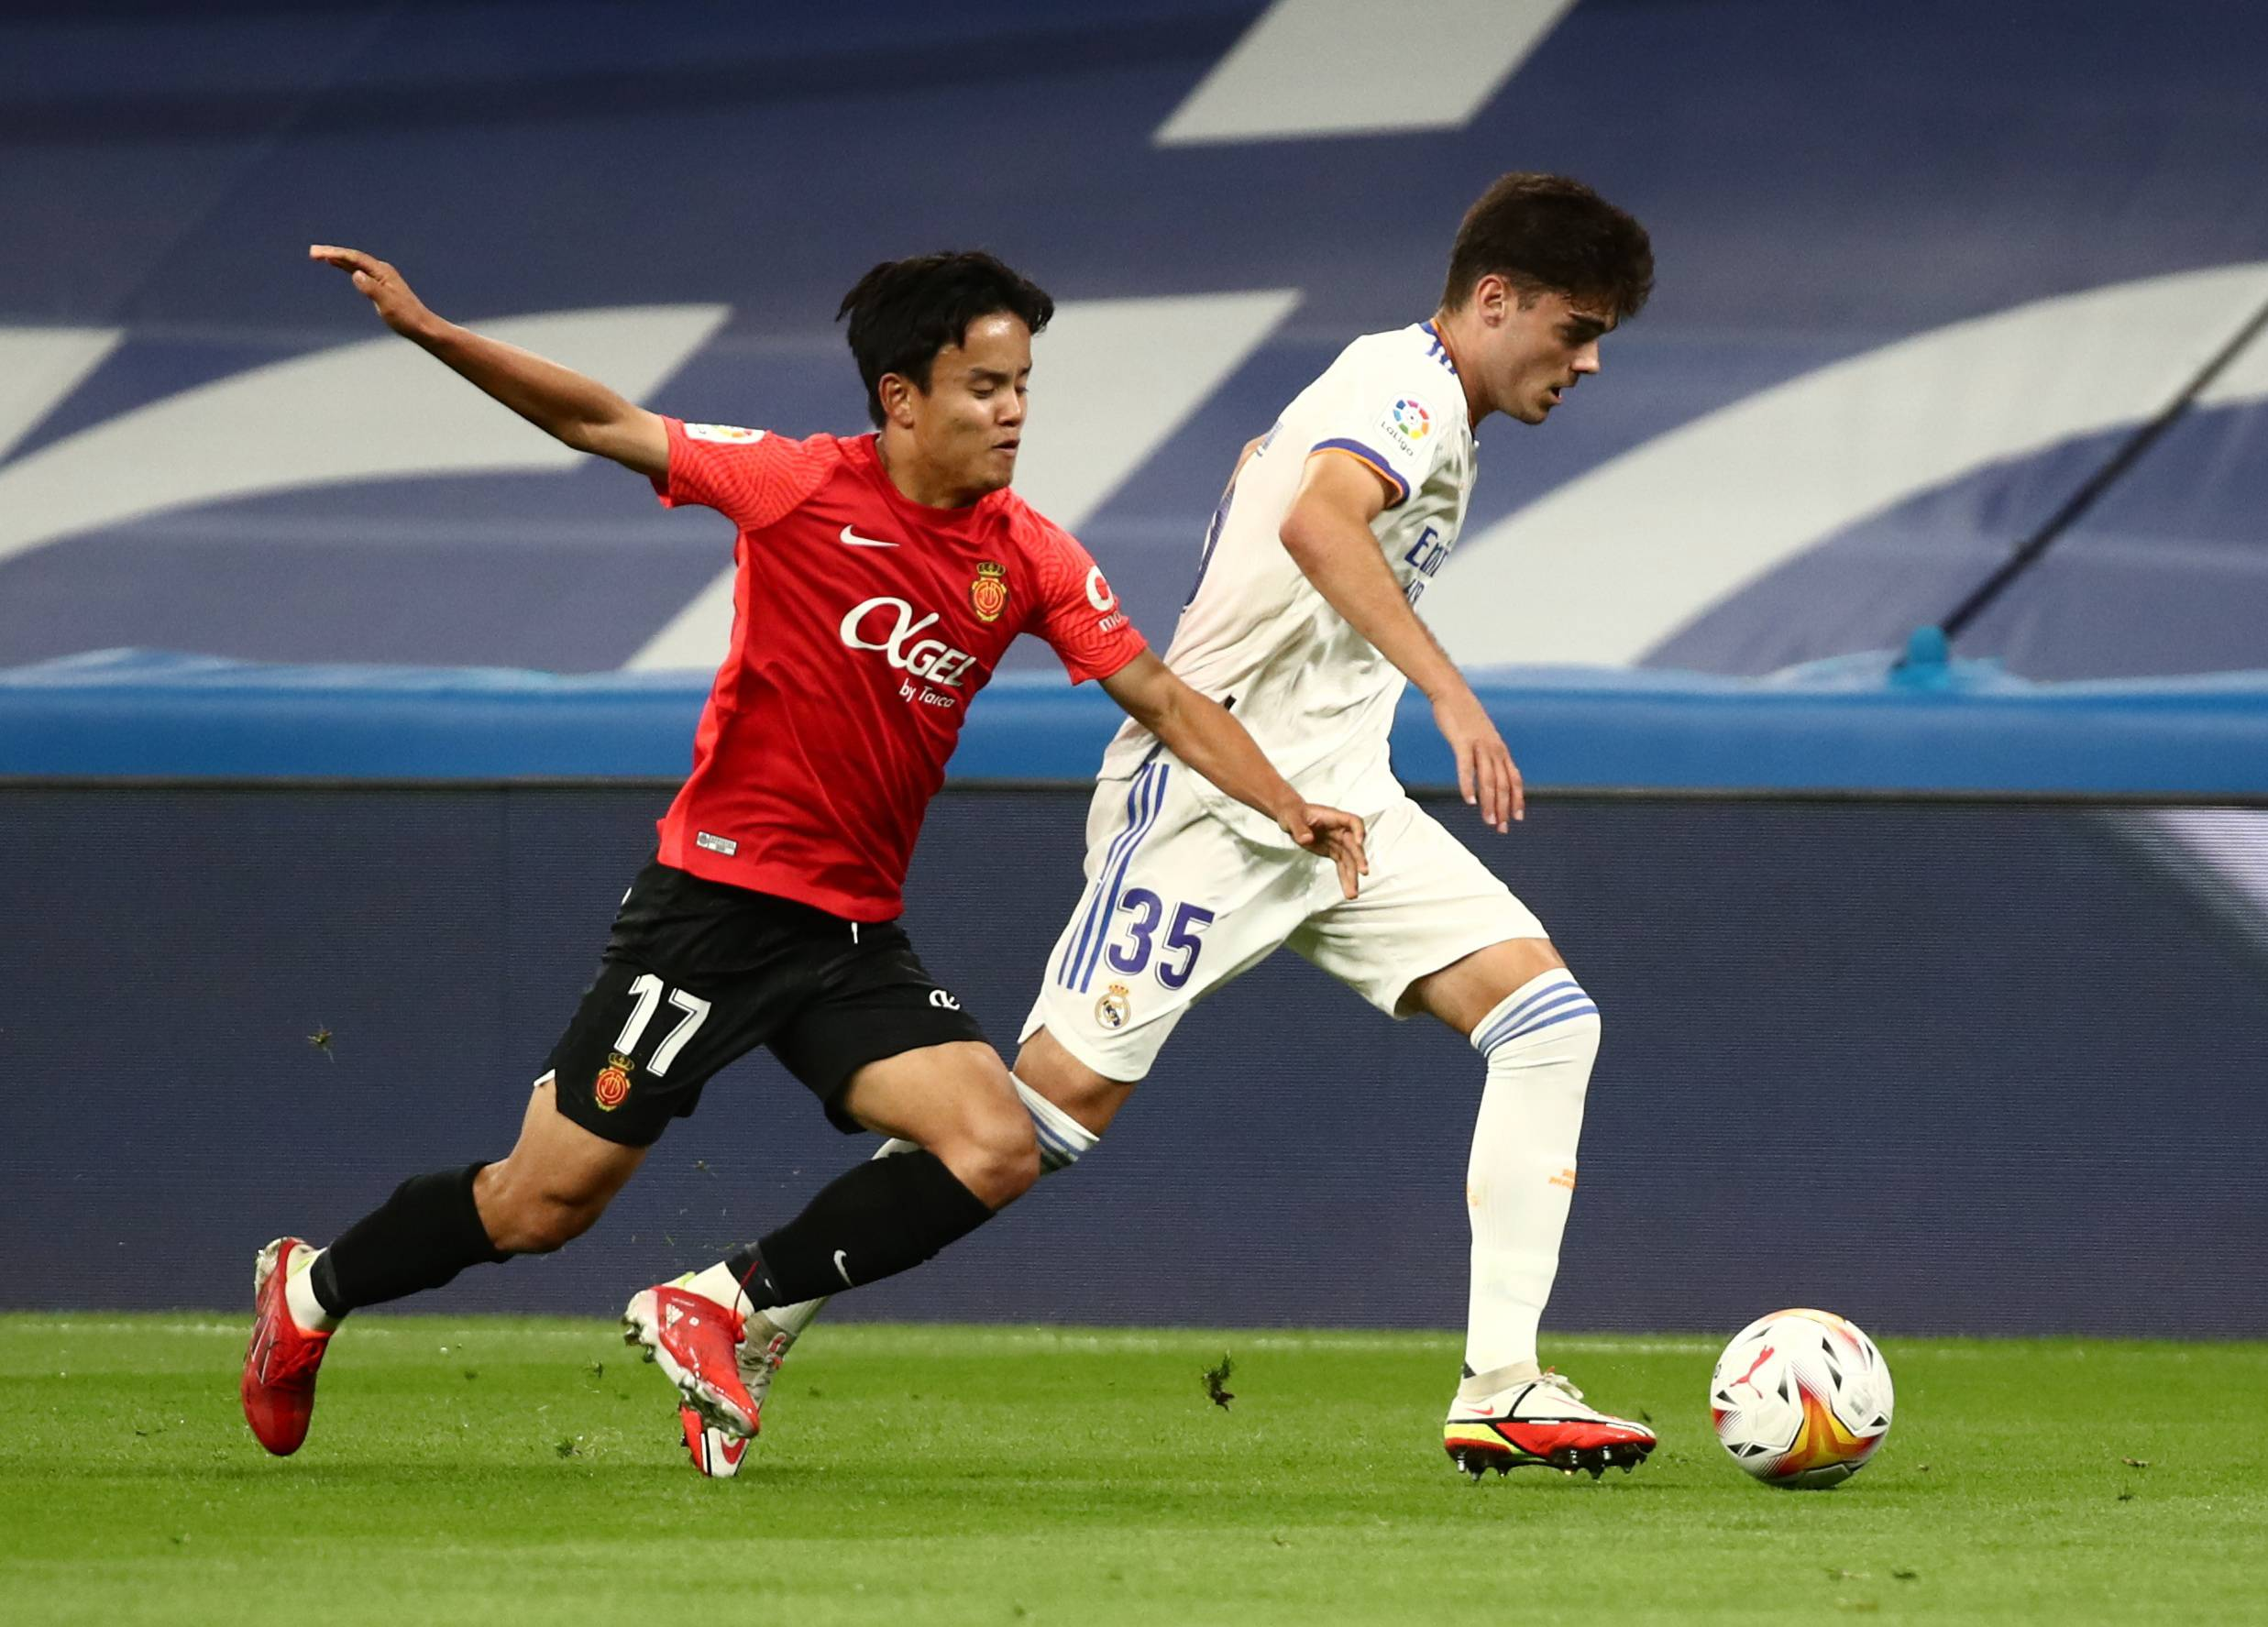 Mallorca's Takefusa Kubo (left) competes against Real Madrid's Miguel Gutierrez during their match on Wednesday in Madrid. | REUTERS